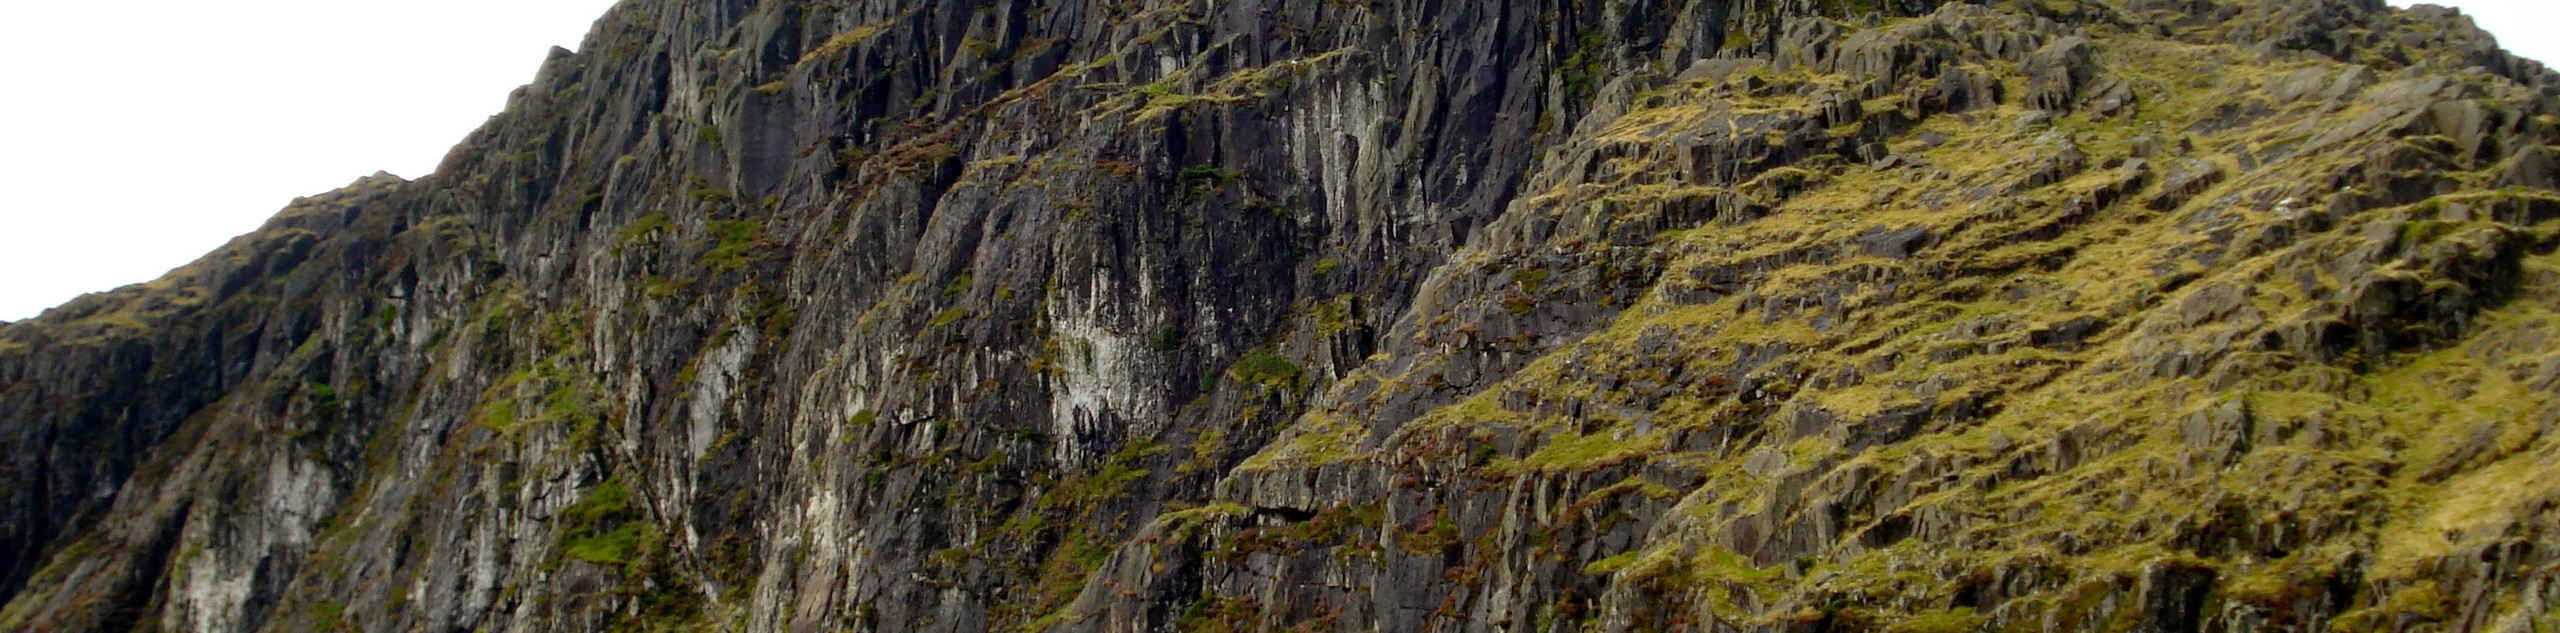 Langdale Pikes Walk: Pavey Ark, Harrison Stickle, Pike of Stickle